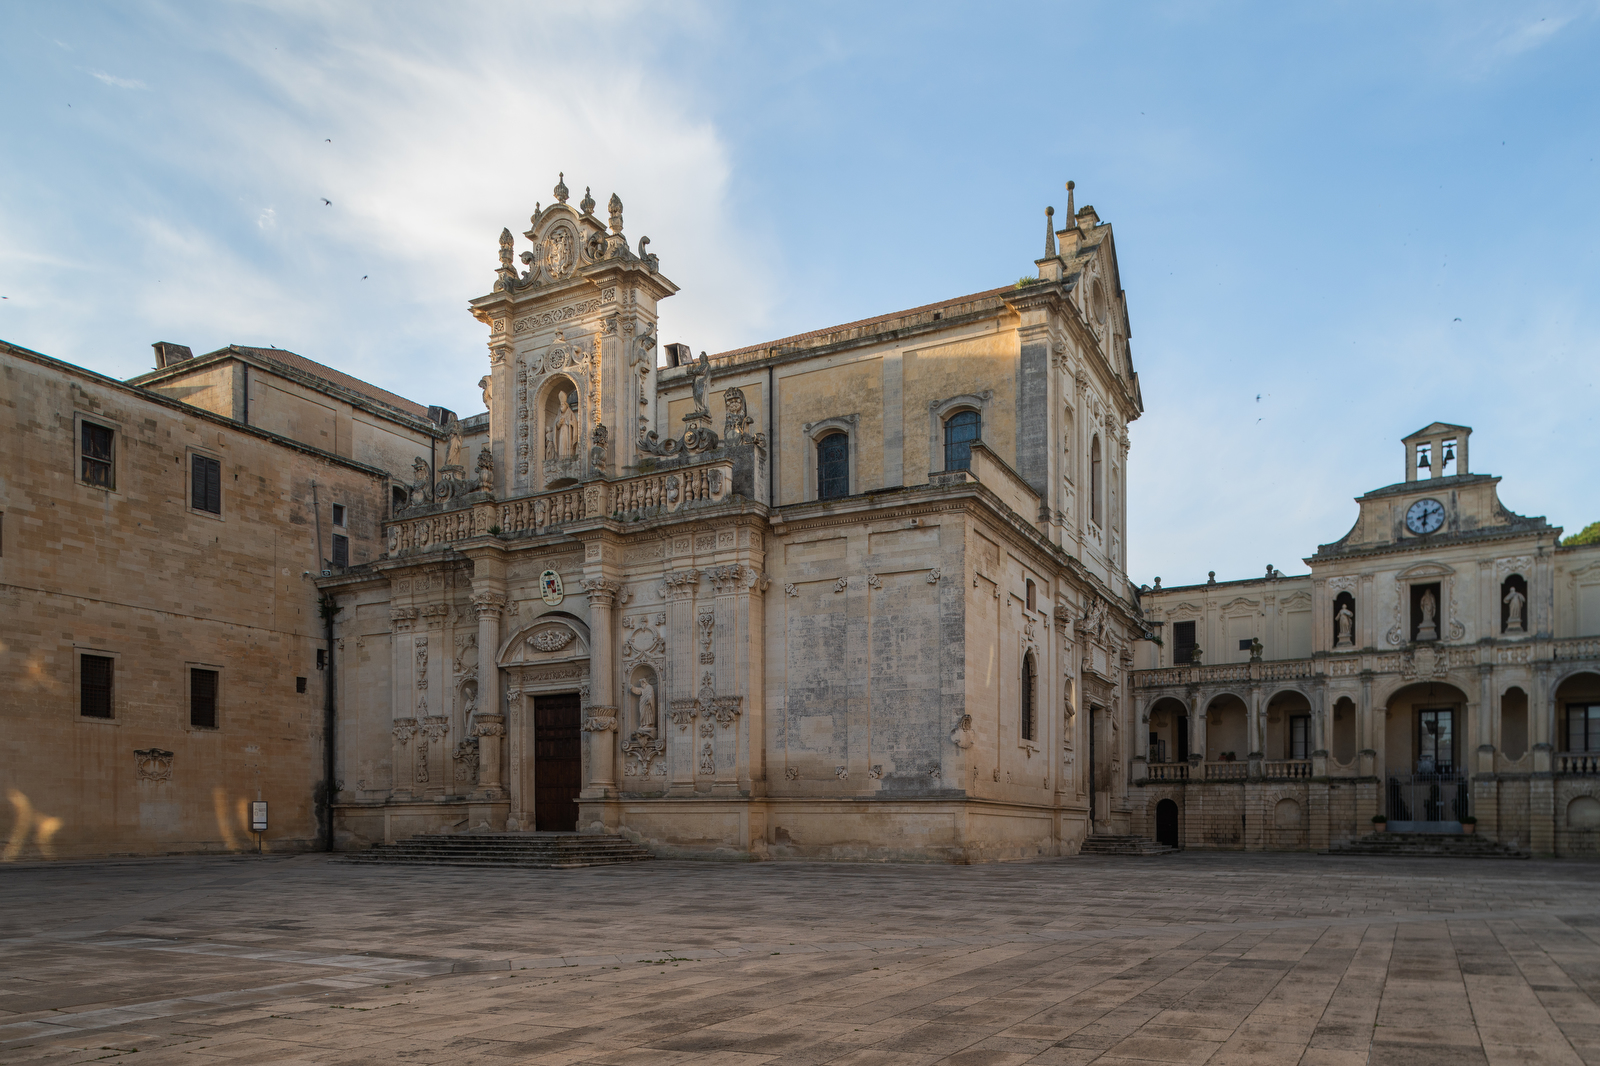 The Italian town of Lecce.